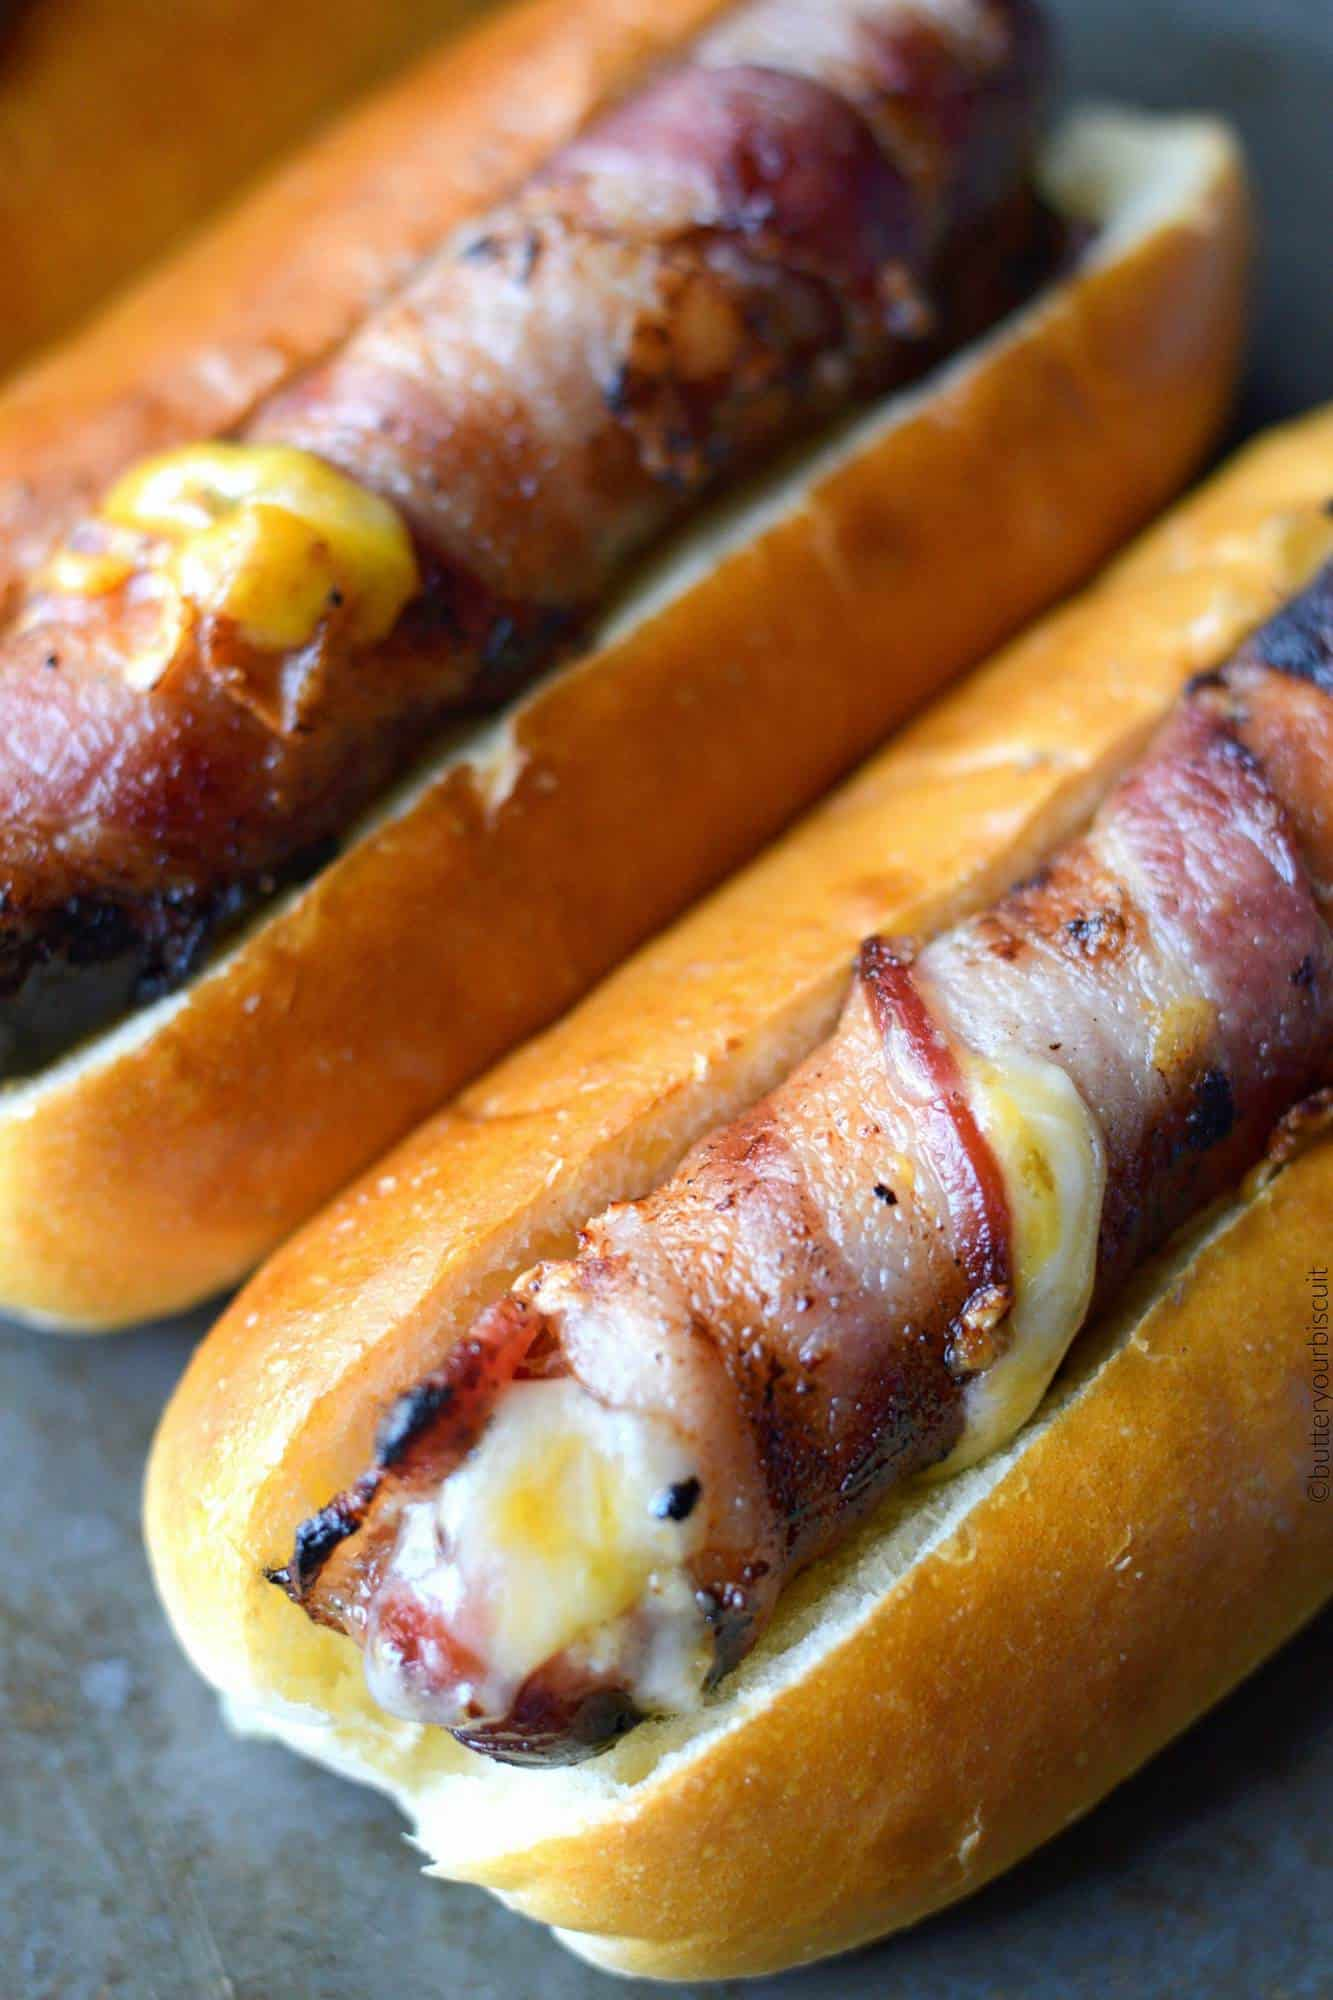 Bacon wrapped cheese stuffed hot dogs